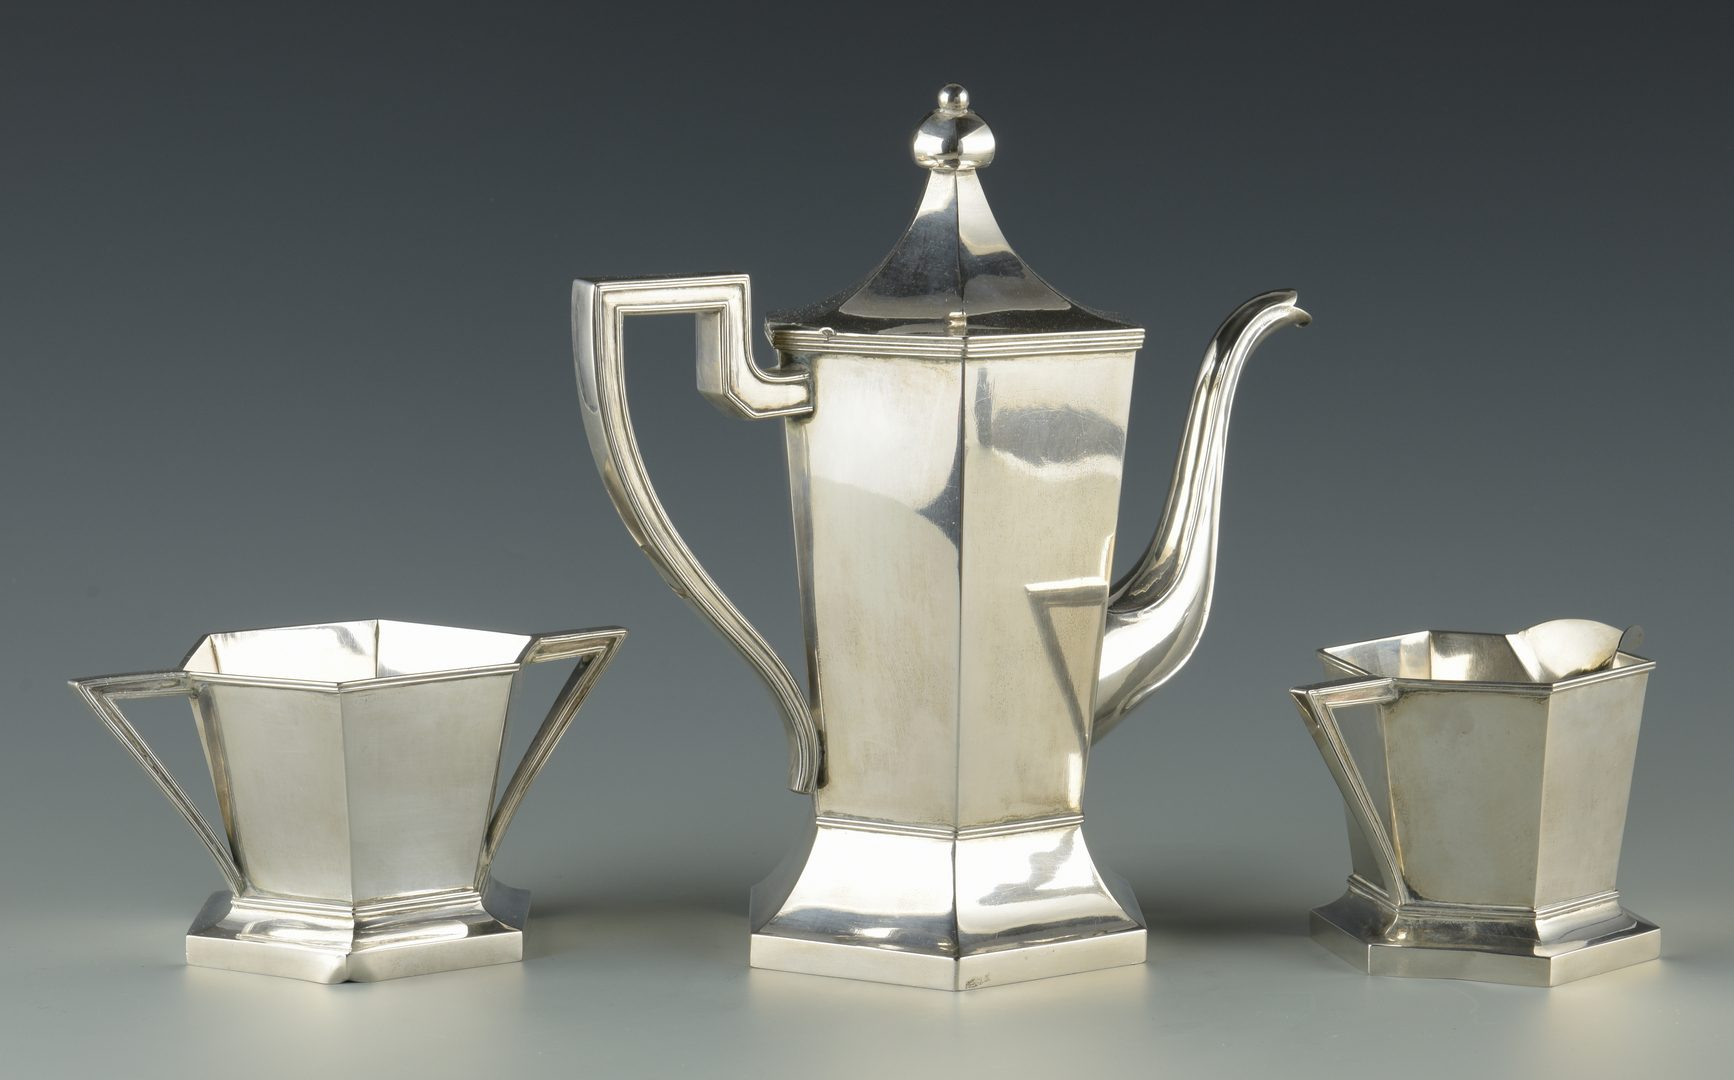 Lot 3: Chinese Export Silver Tea Set, 3 pc, Luen Wo